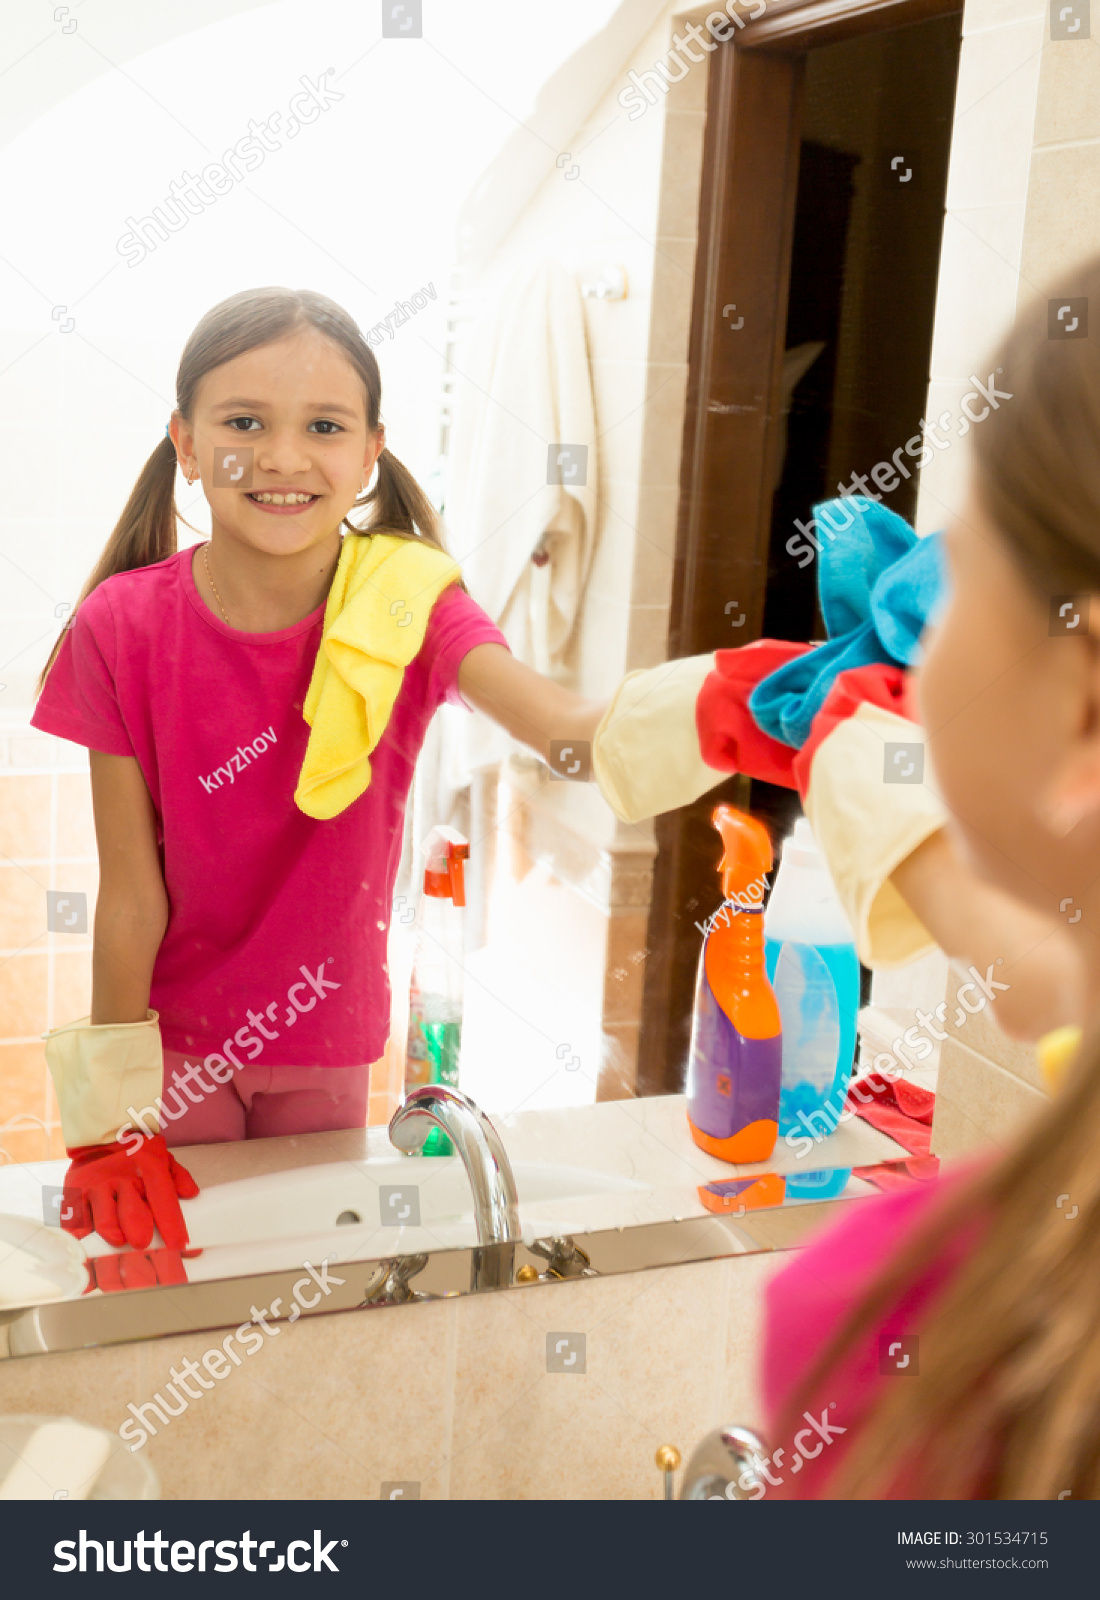 How to clean bathroom mirror - Teen Girl Helping At Housework And Cleaning Bathroom Mirror